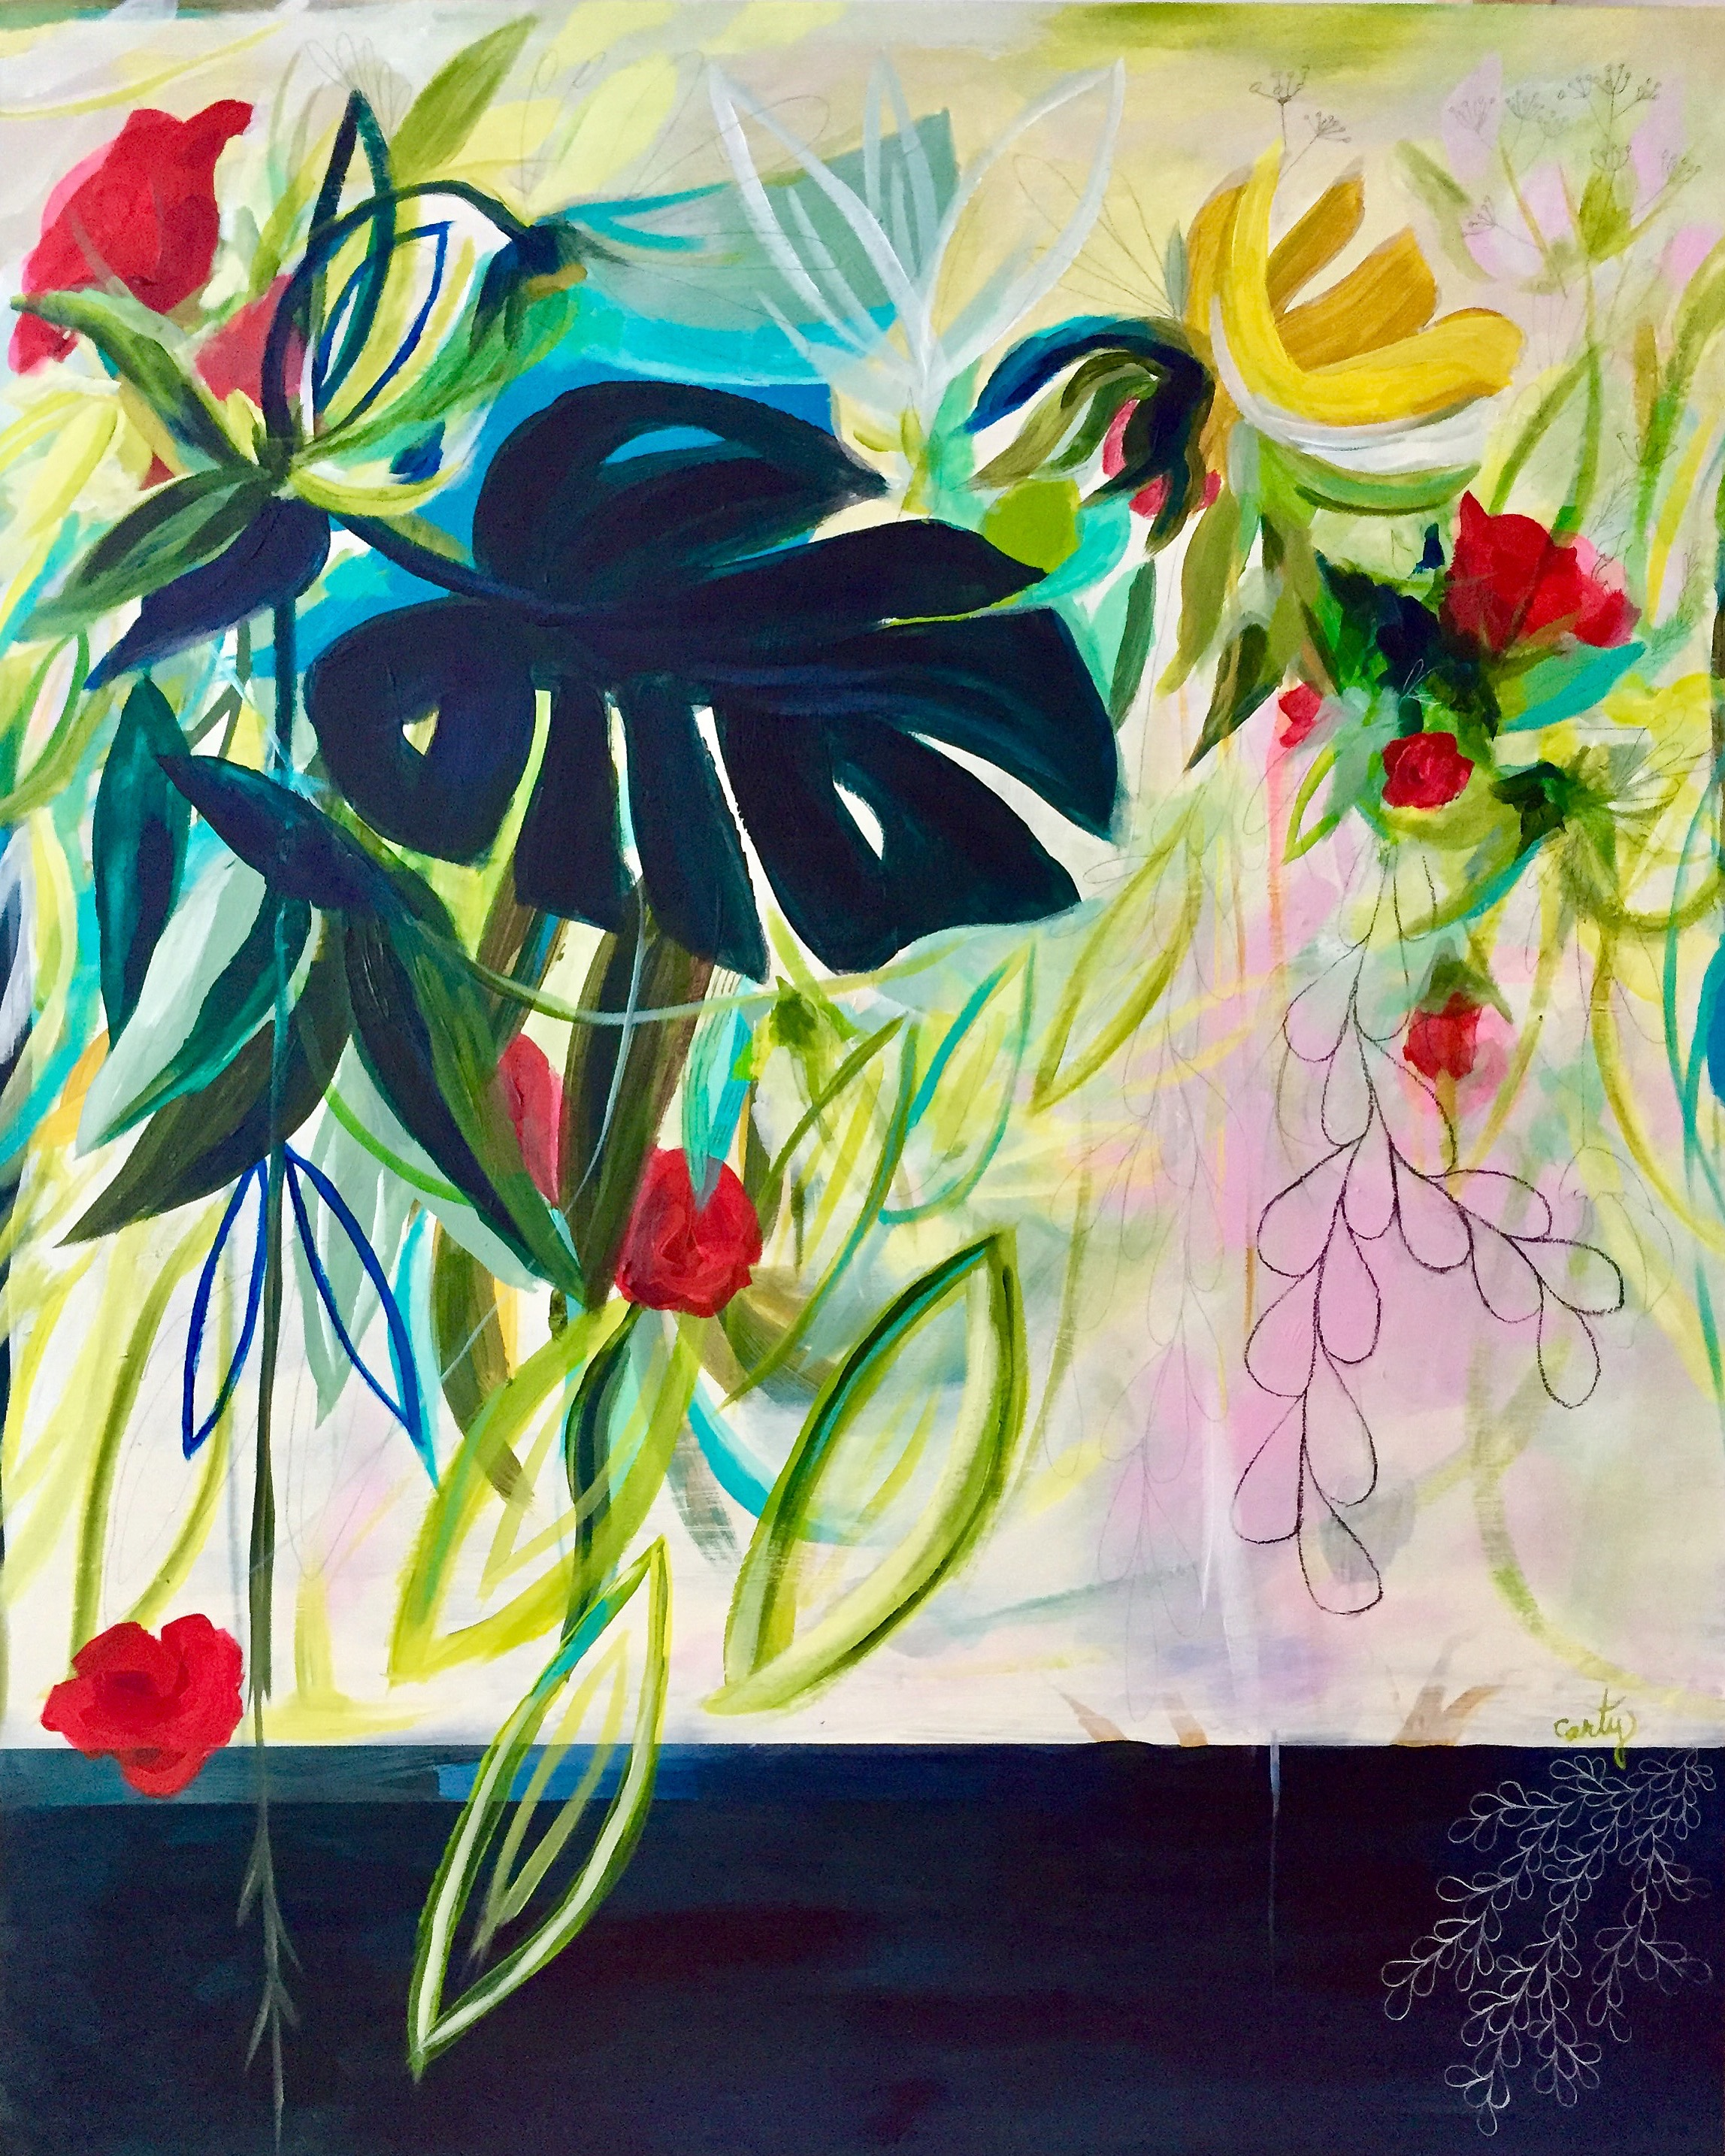 megan_carty_abstract_floral_painting.JPG